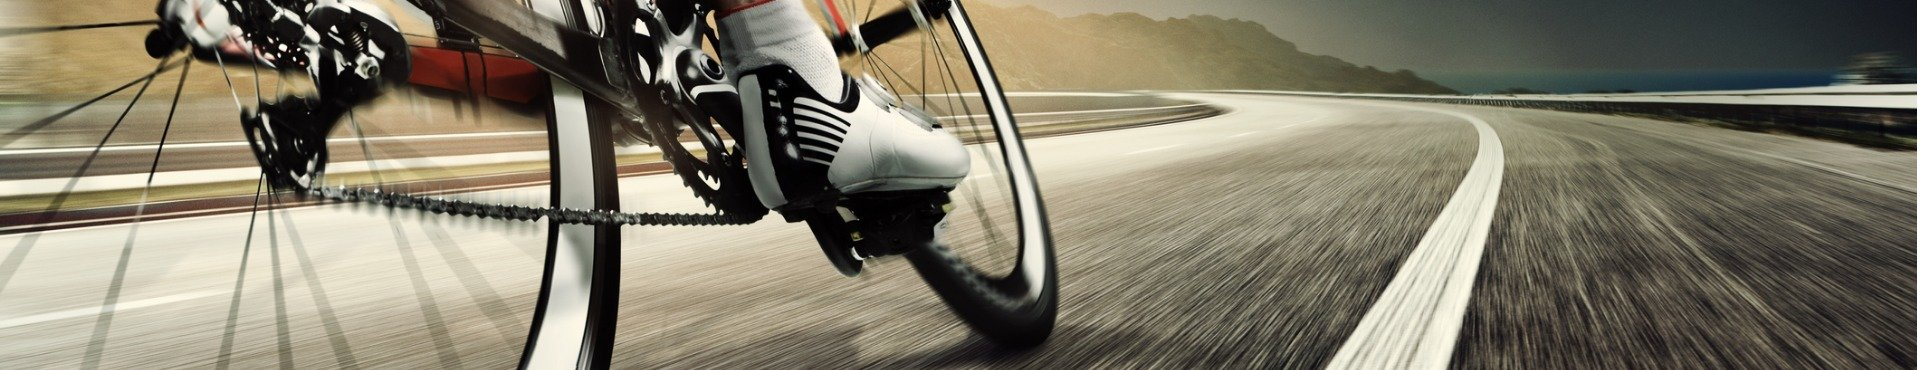 Professional road cyclist | Shine Lawyers